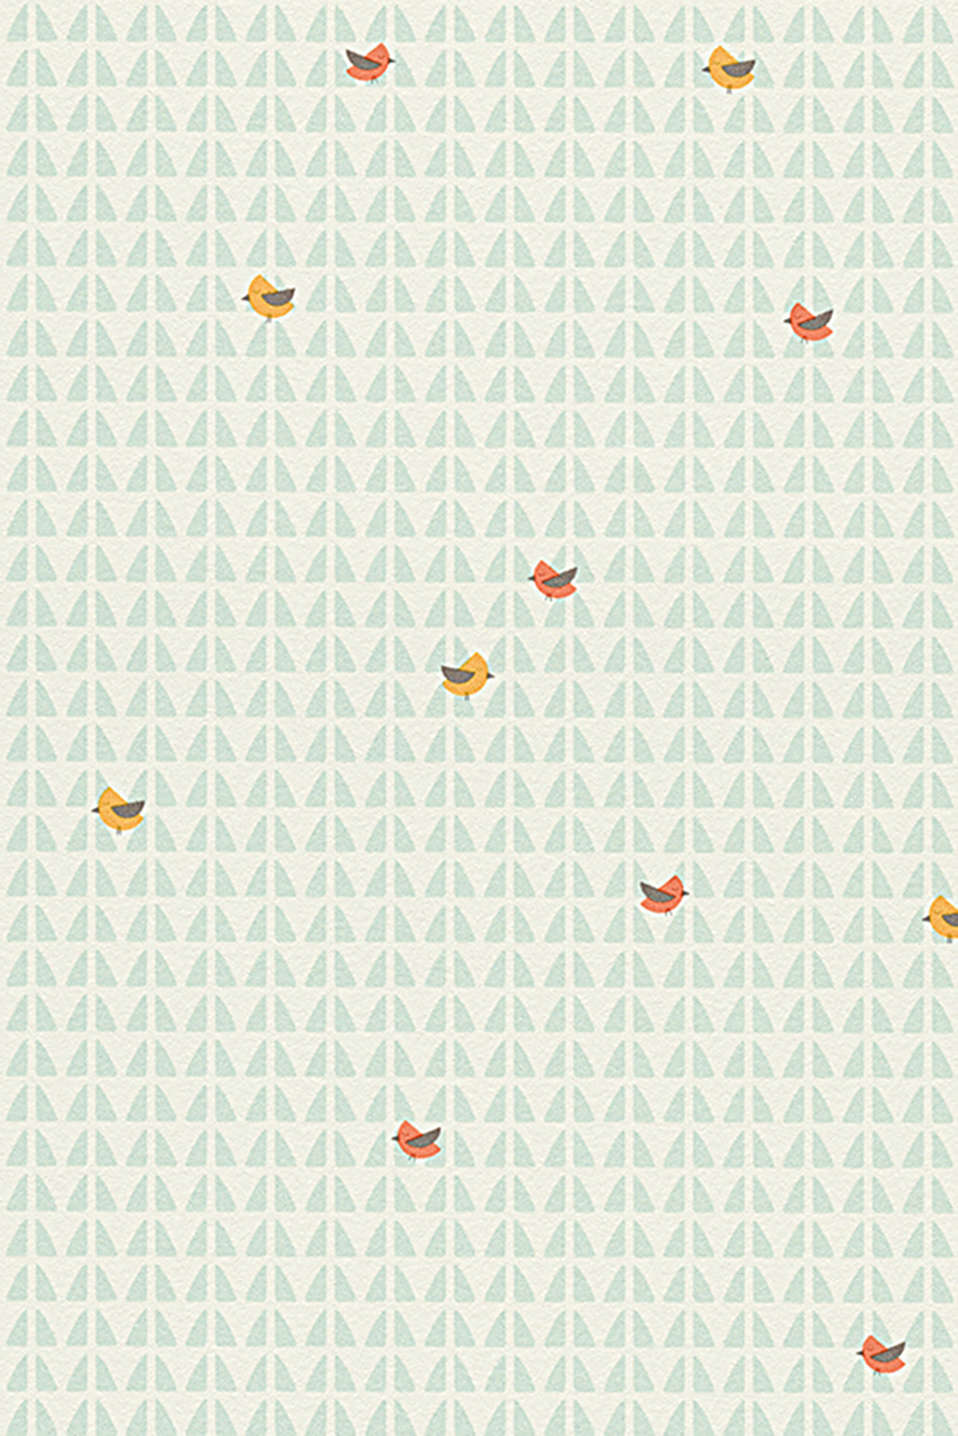 Esprit - Carta da parati High Sky Birds Patterned